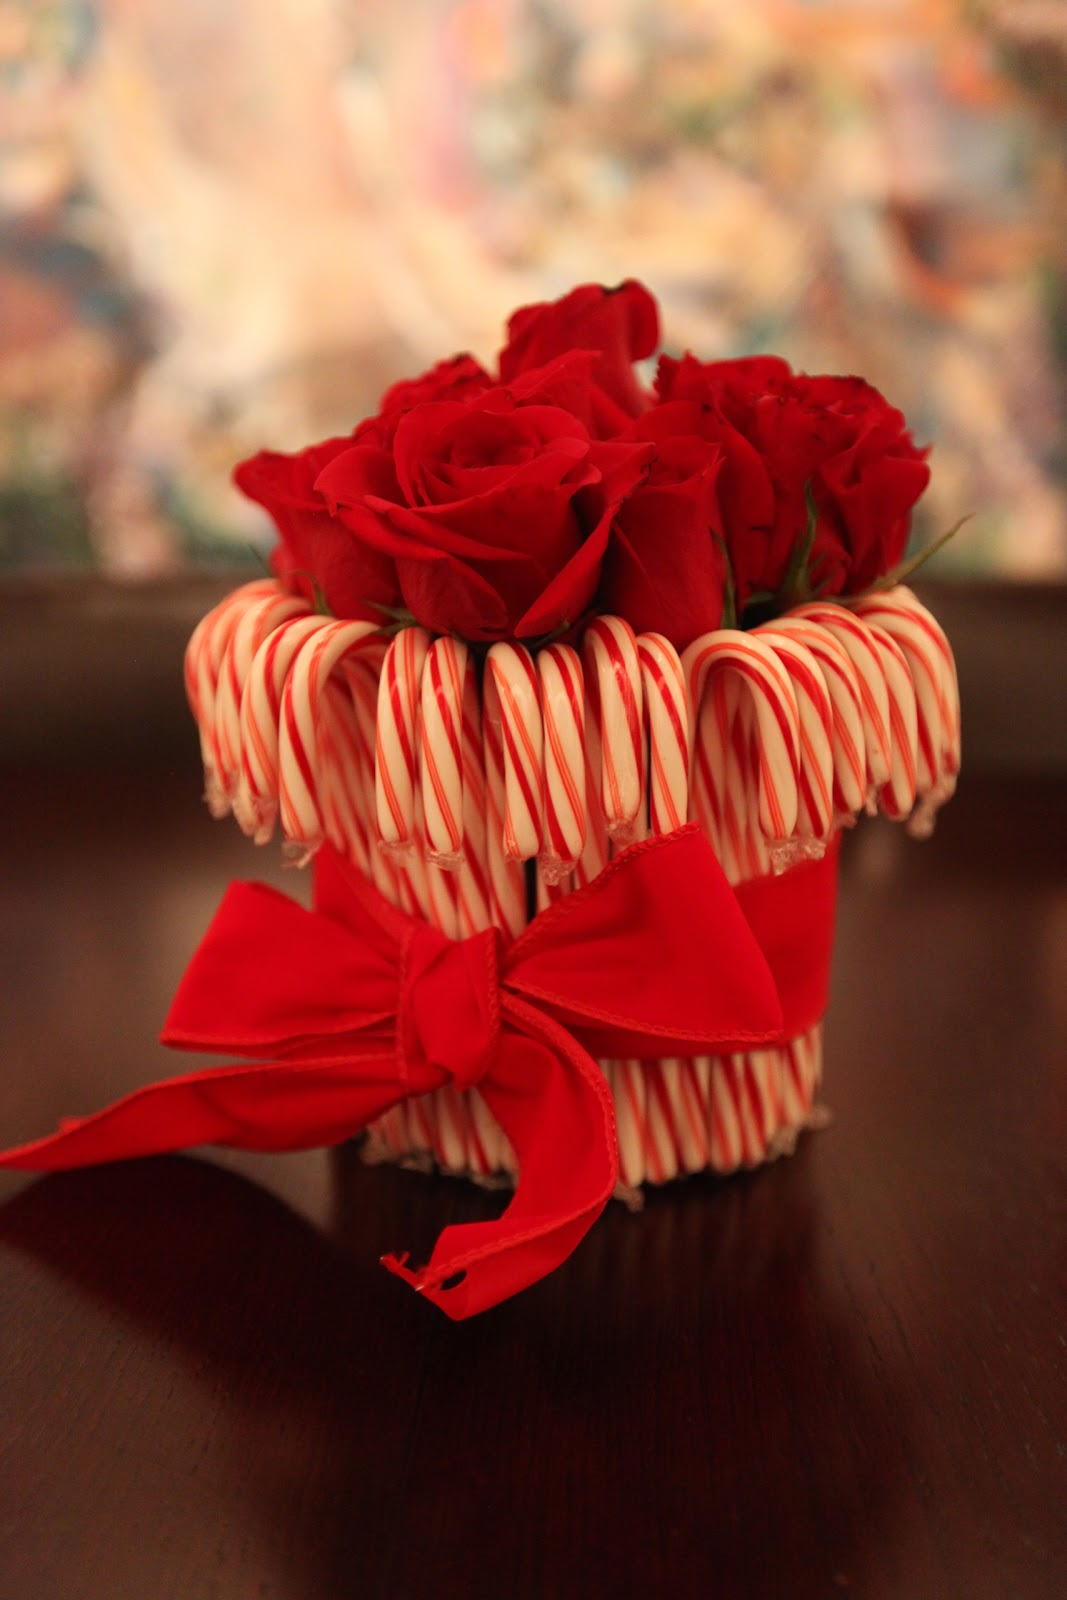 Oh that annelie diy project candy cane centerpiece